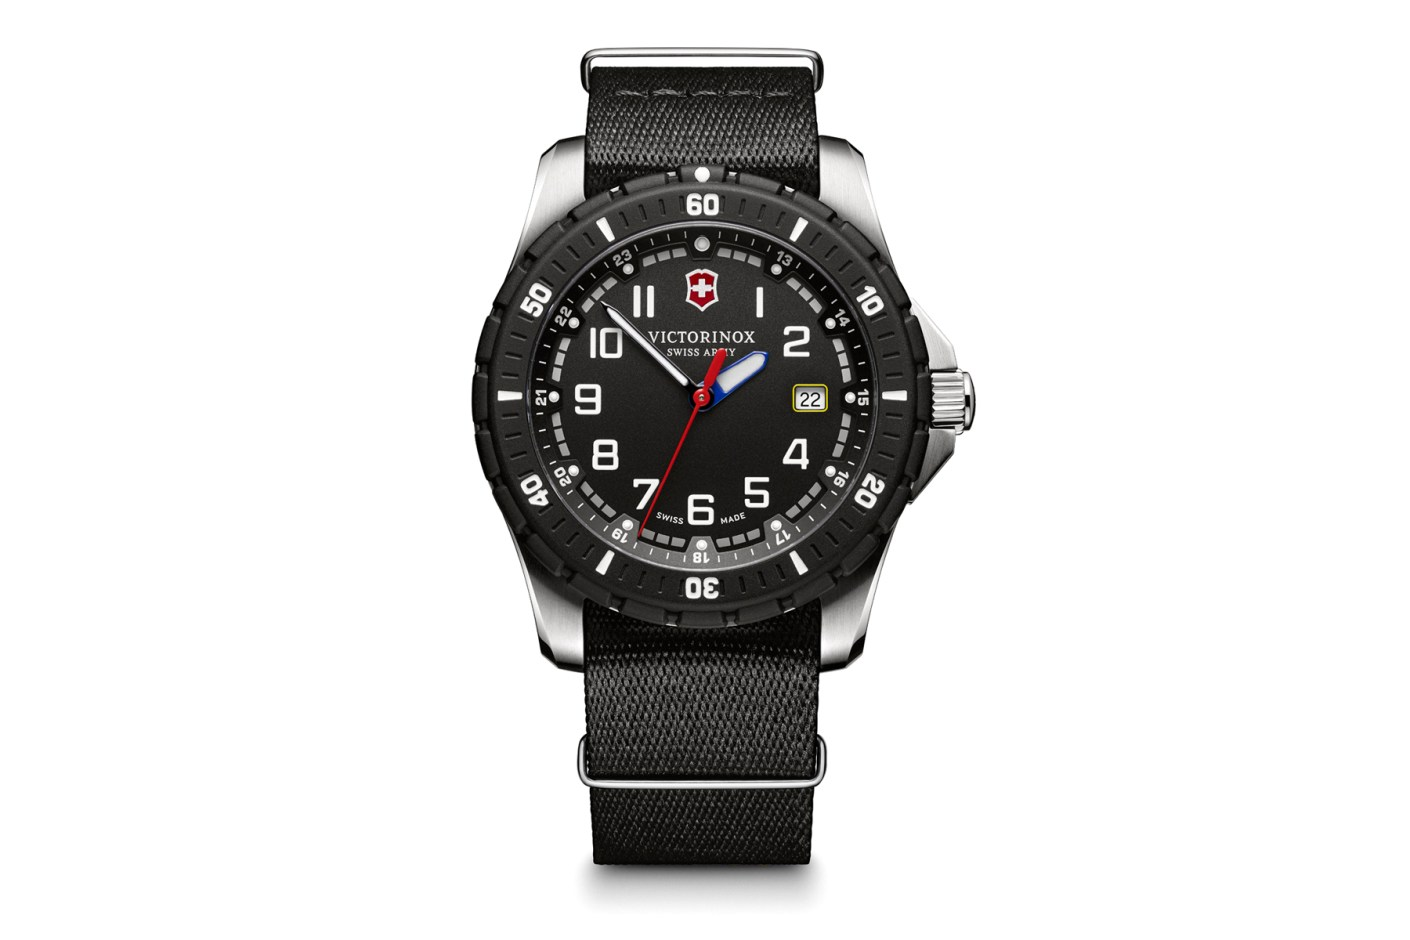 Image of Victorinox Maverick Sport Collection